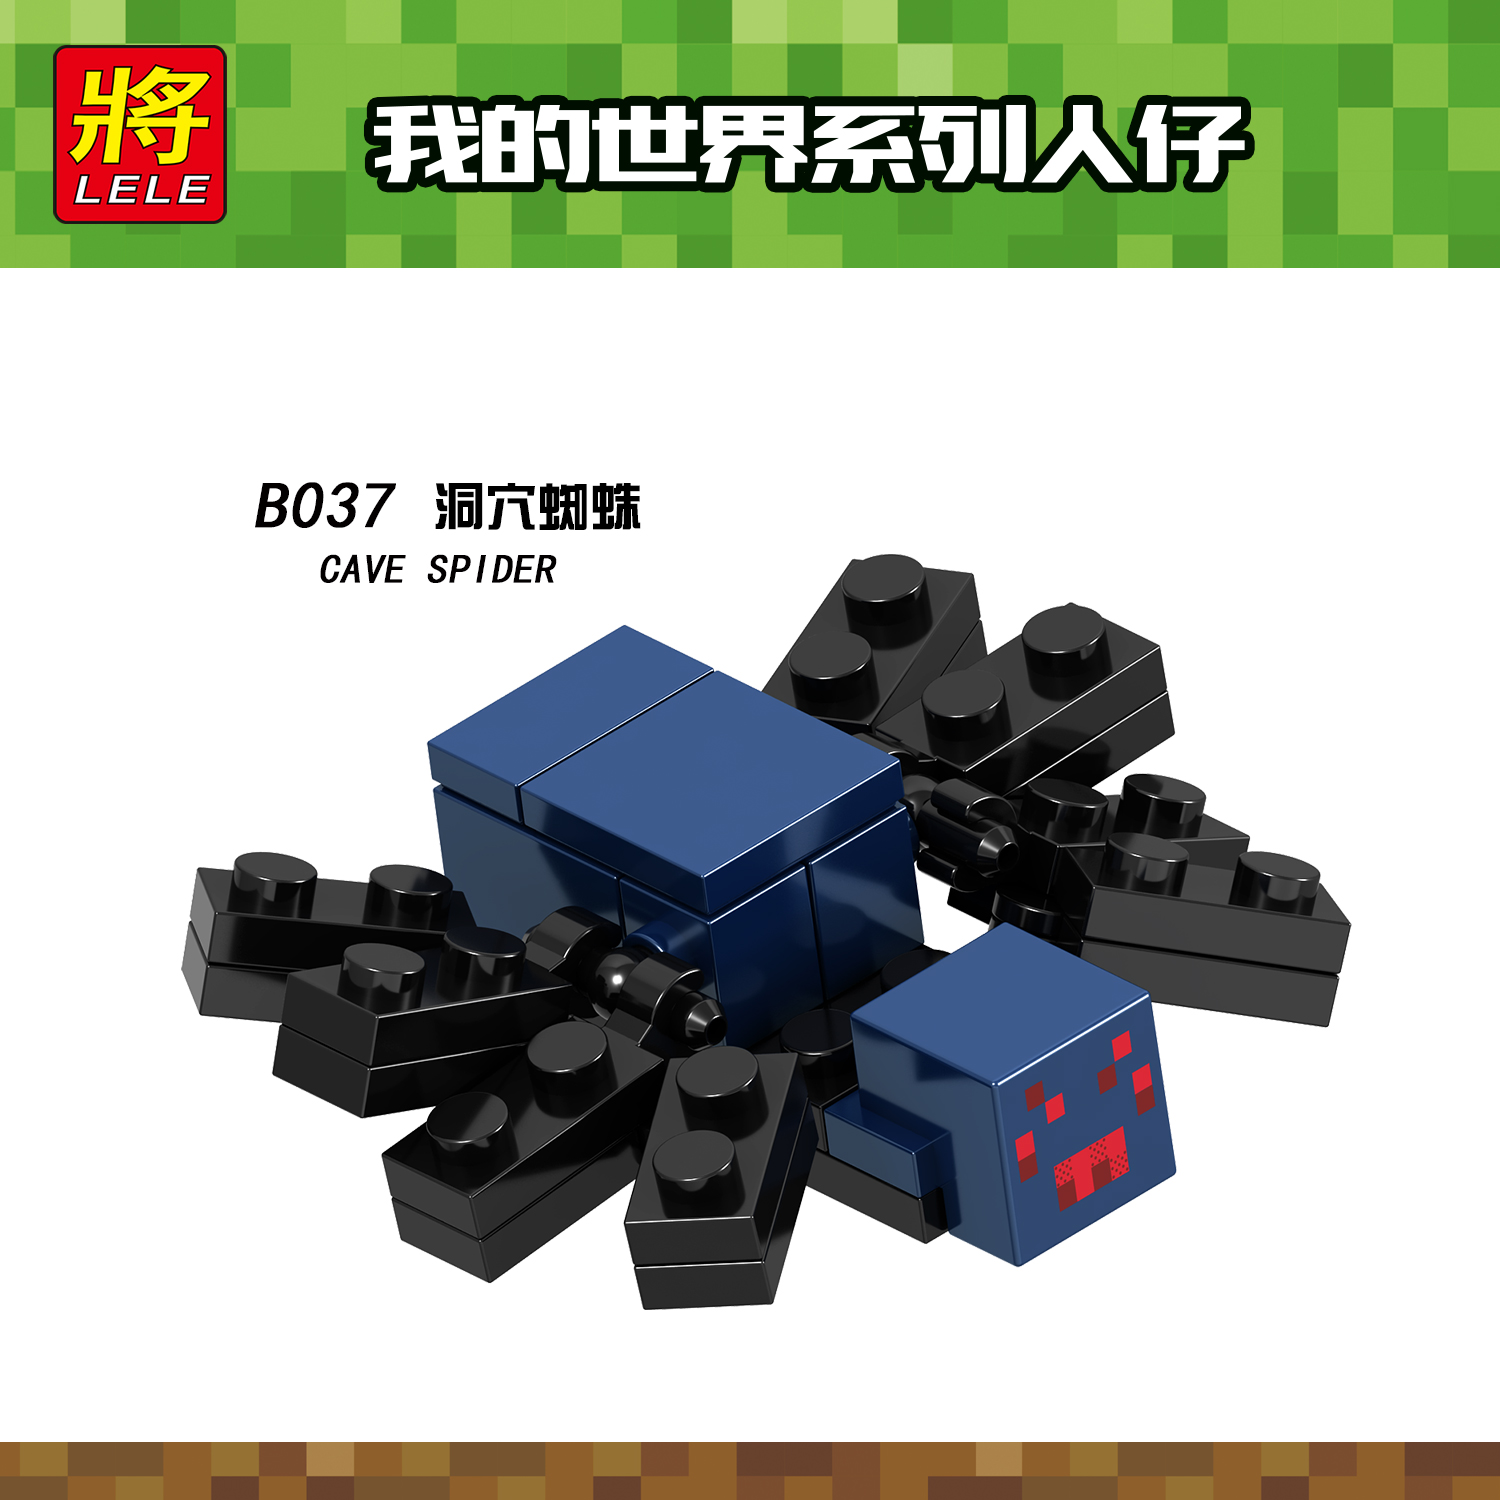 Single Sale Minecraft Cave Spider Building Blocks Toys For Children  Compatible Legoing Minecrafted Legoings Figures Bricks B037